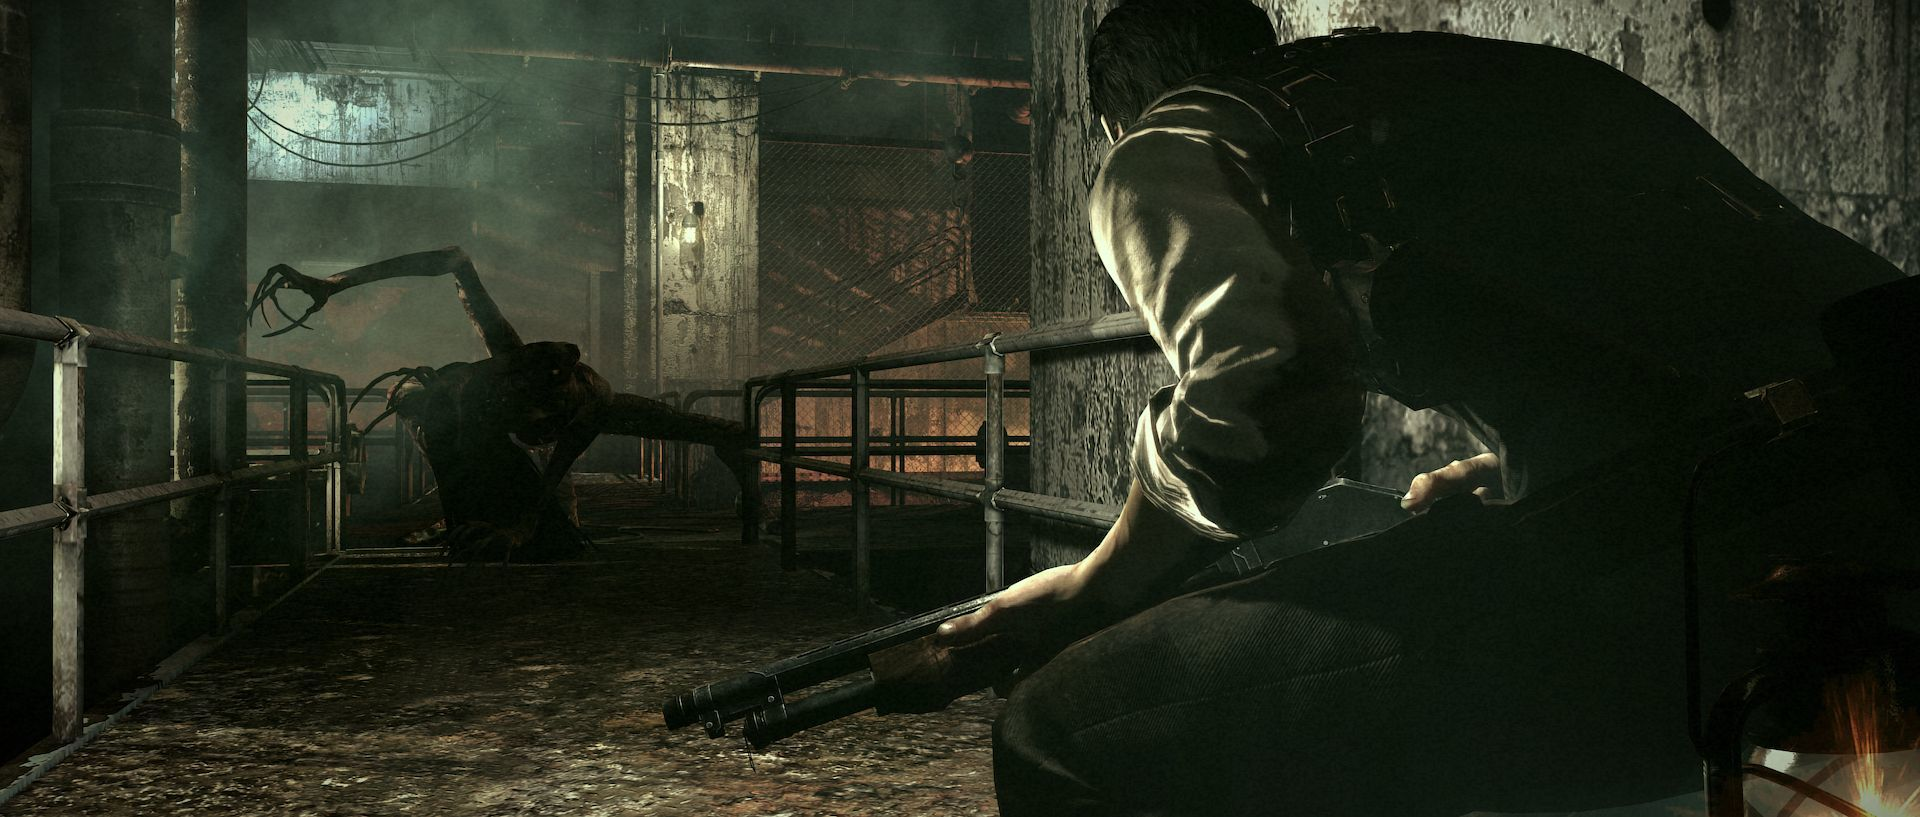 Imágenes The Evil Within Gamescom 2014